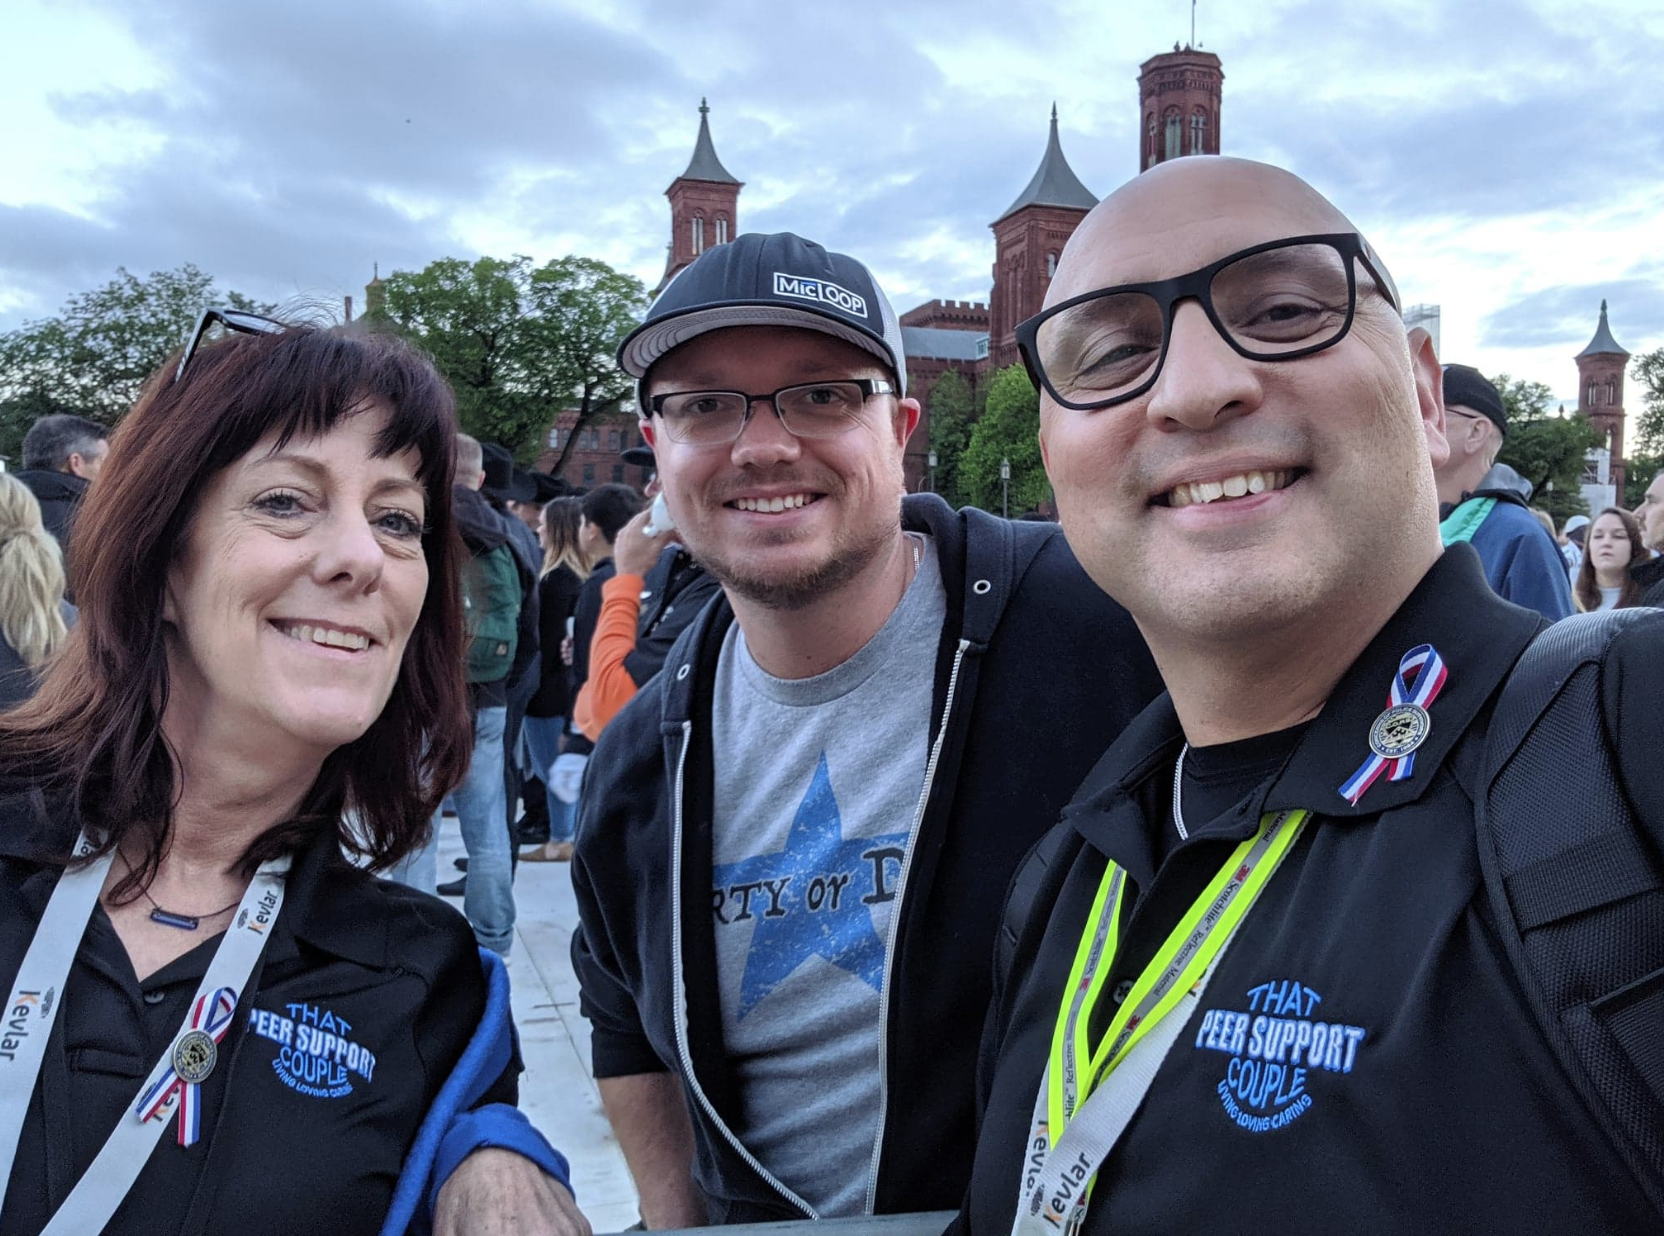 Running into old friends at Police Week in 2019. Javier and Cathy are That Peer Support Couple.